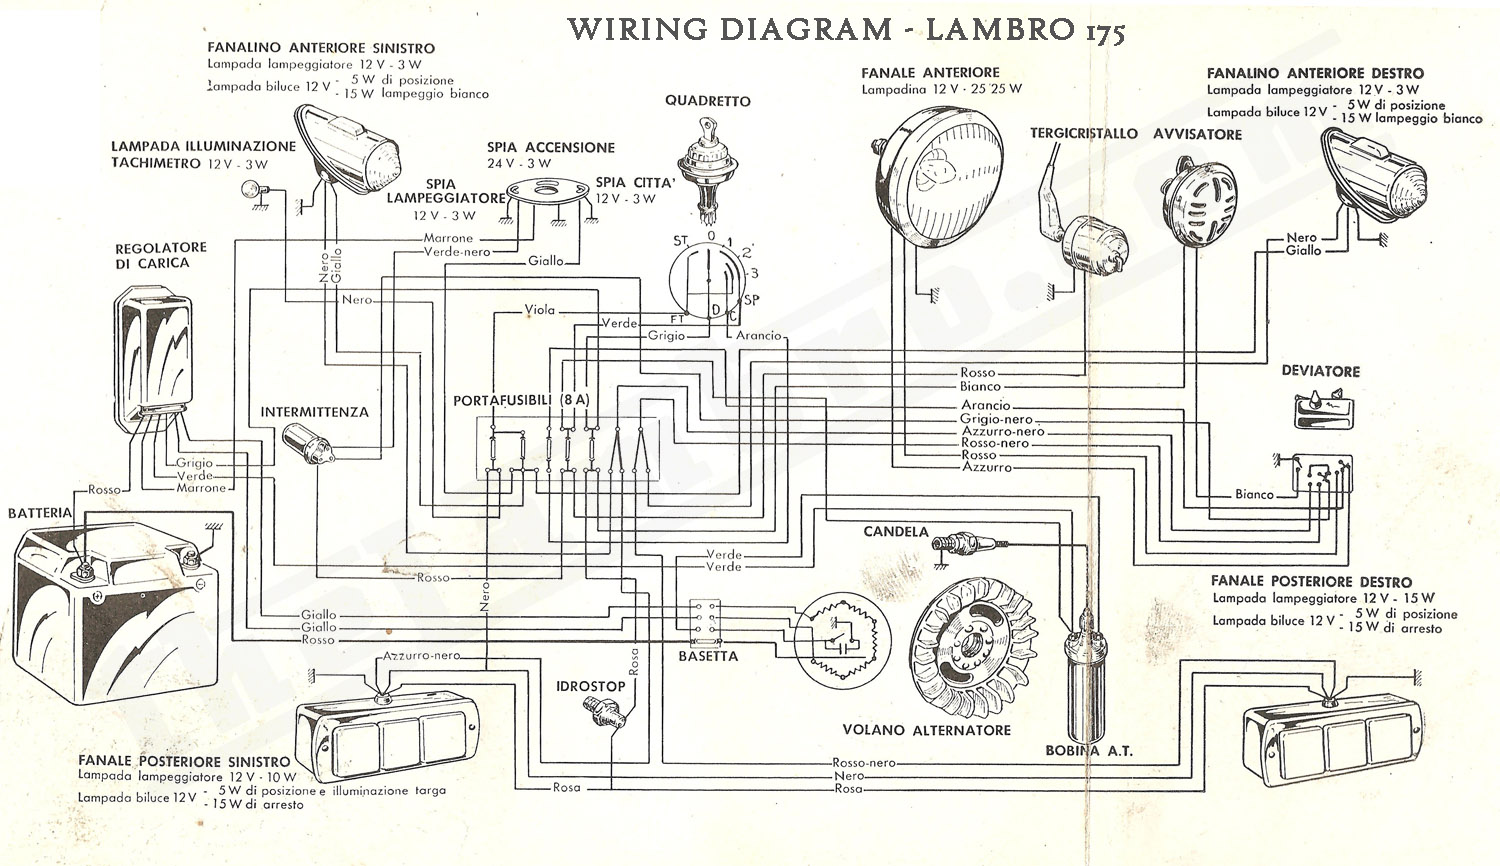 wiring diagram _lambro175 thelambro com electrics lambretta 12v wiring diagram at bakdesigns.co